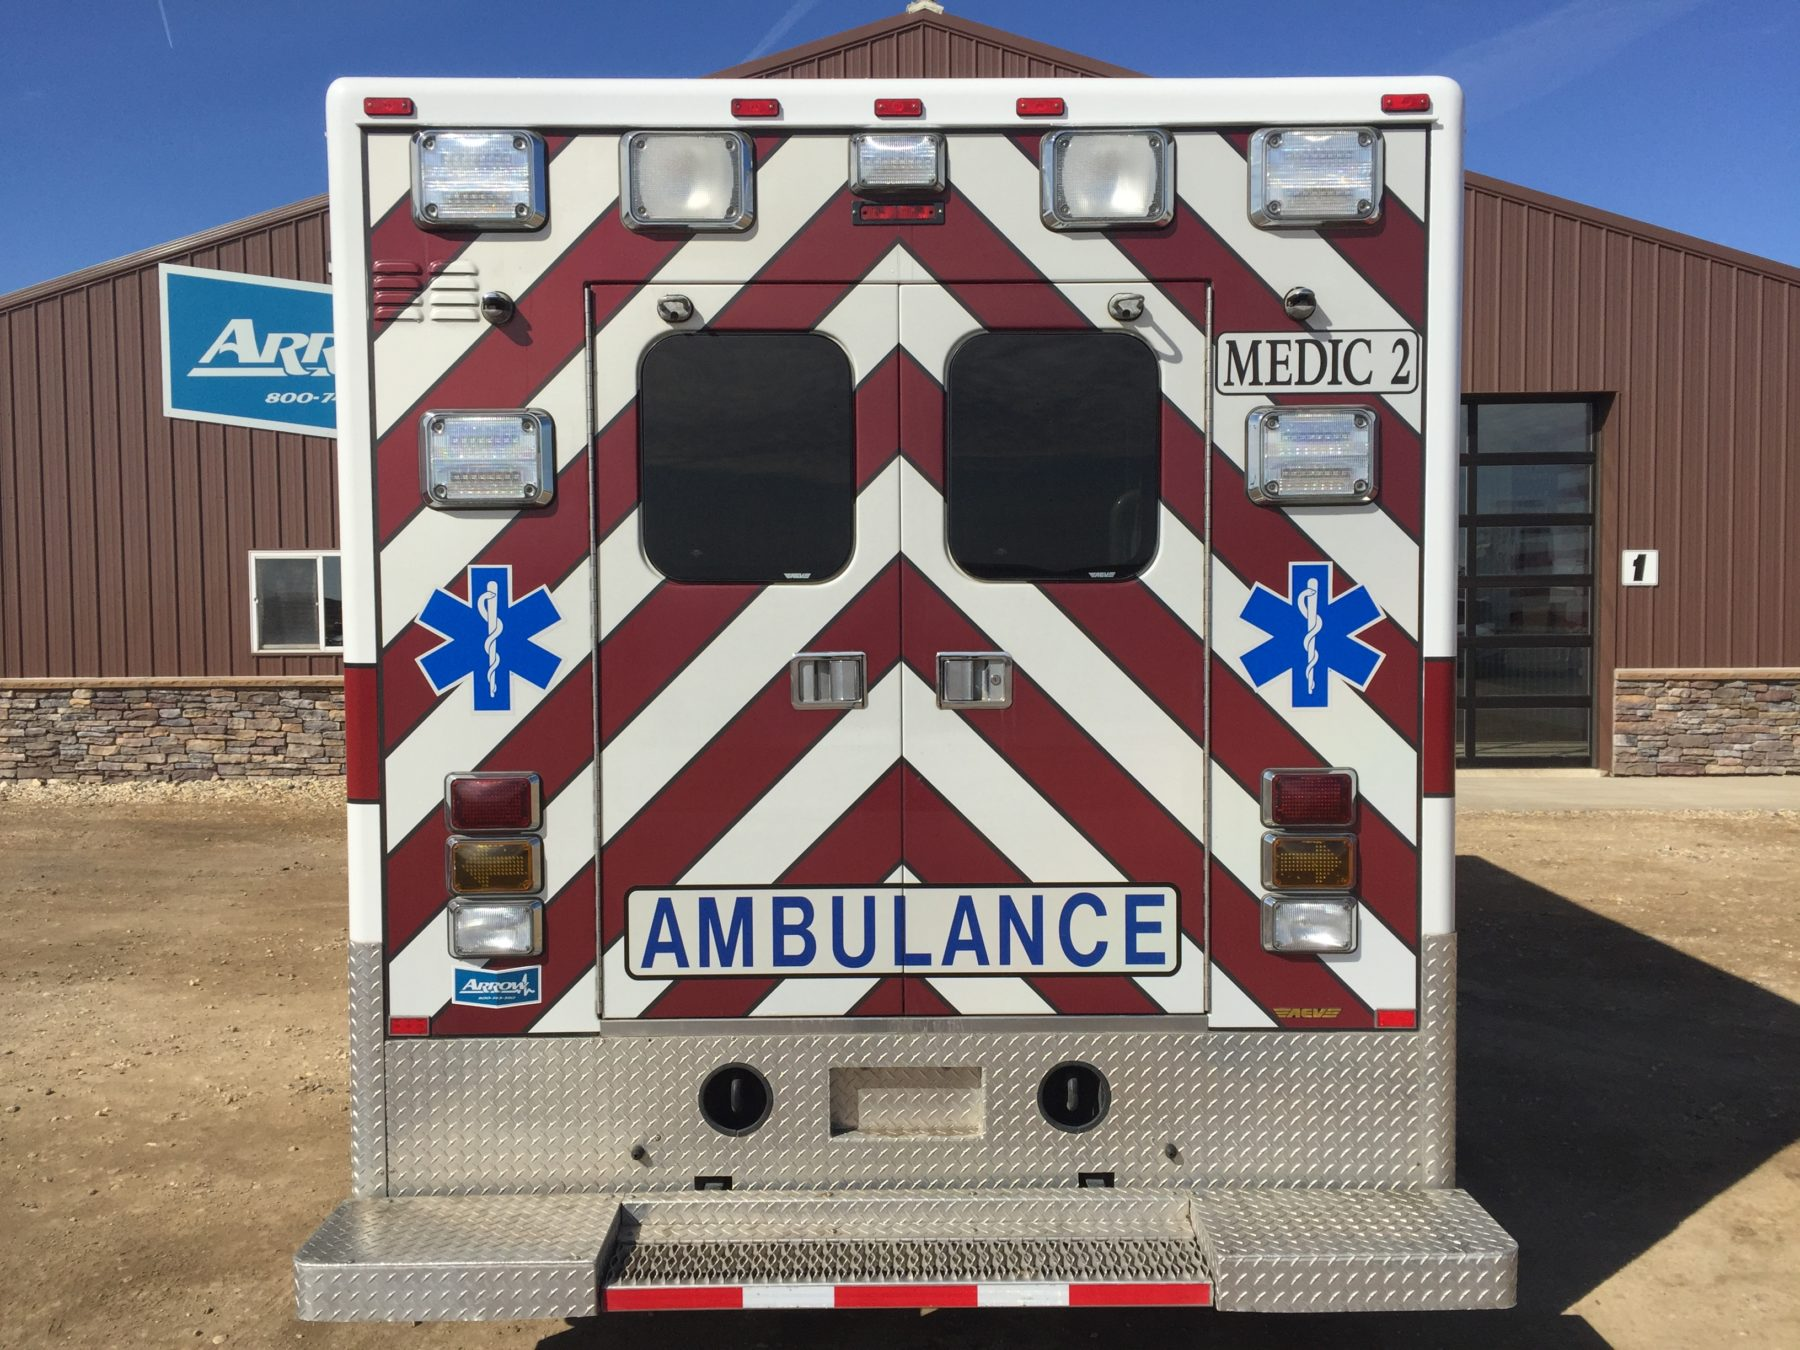 2009 Chevrolet C4500 Heavy Duty Ambulance For Sale – Picture 7